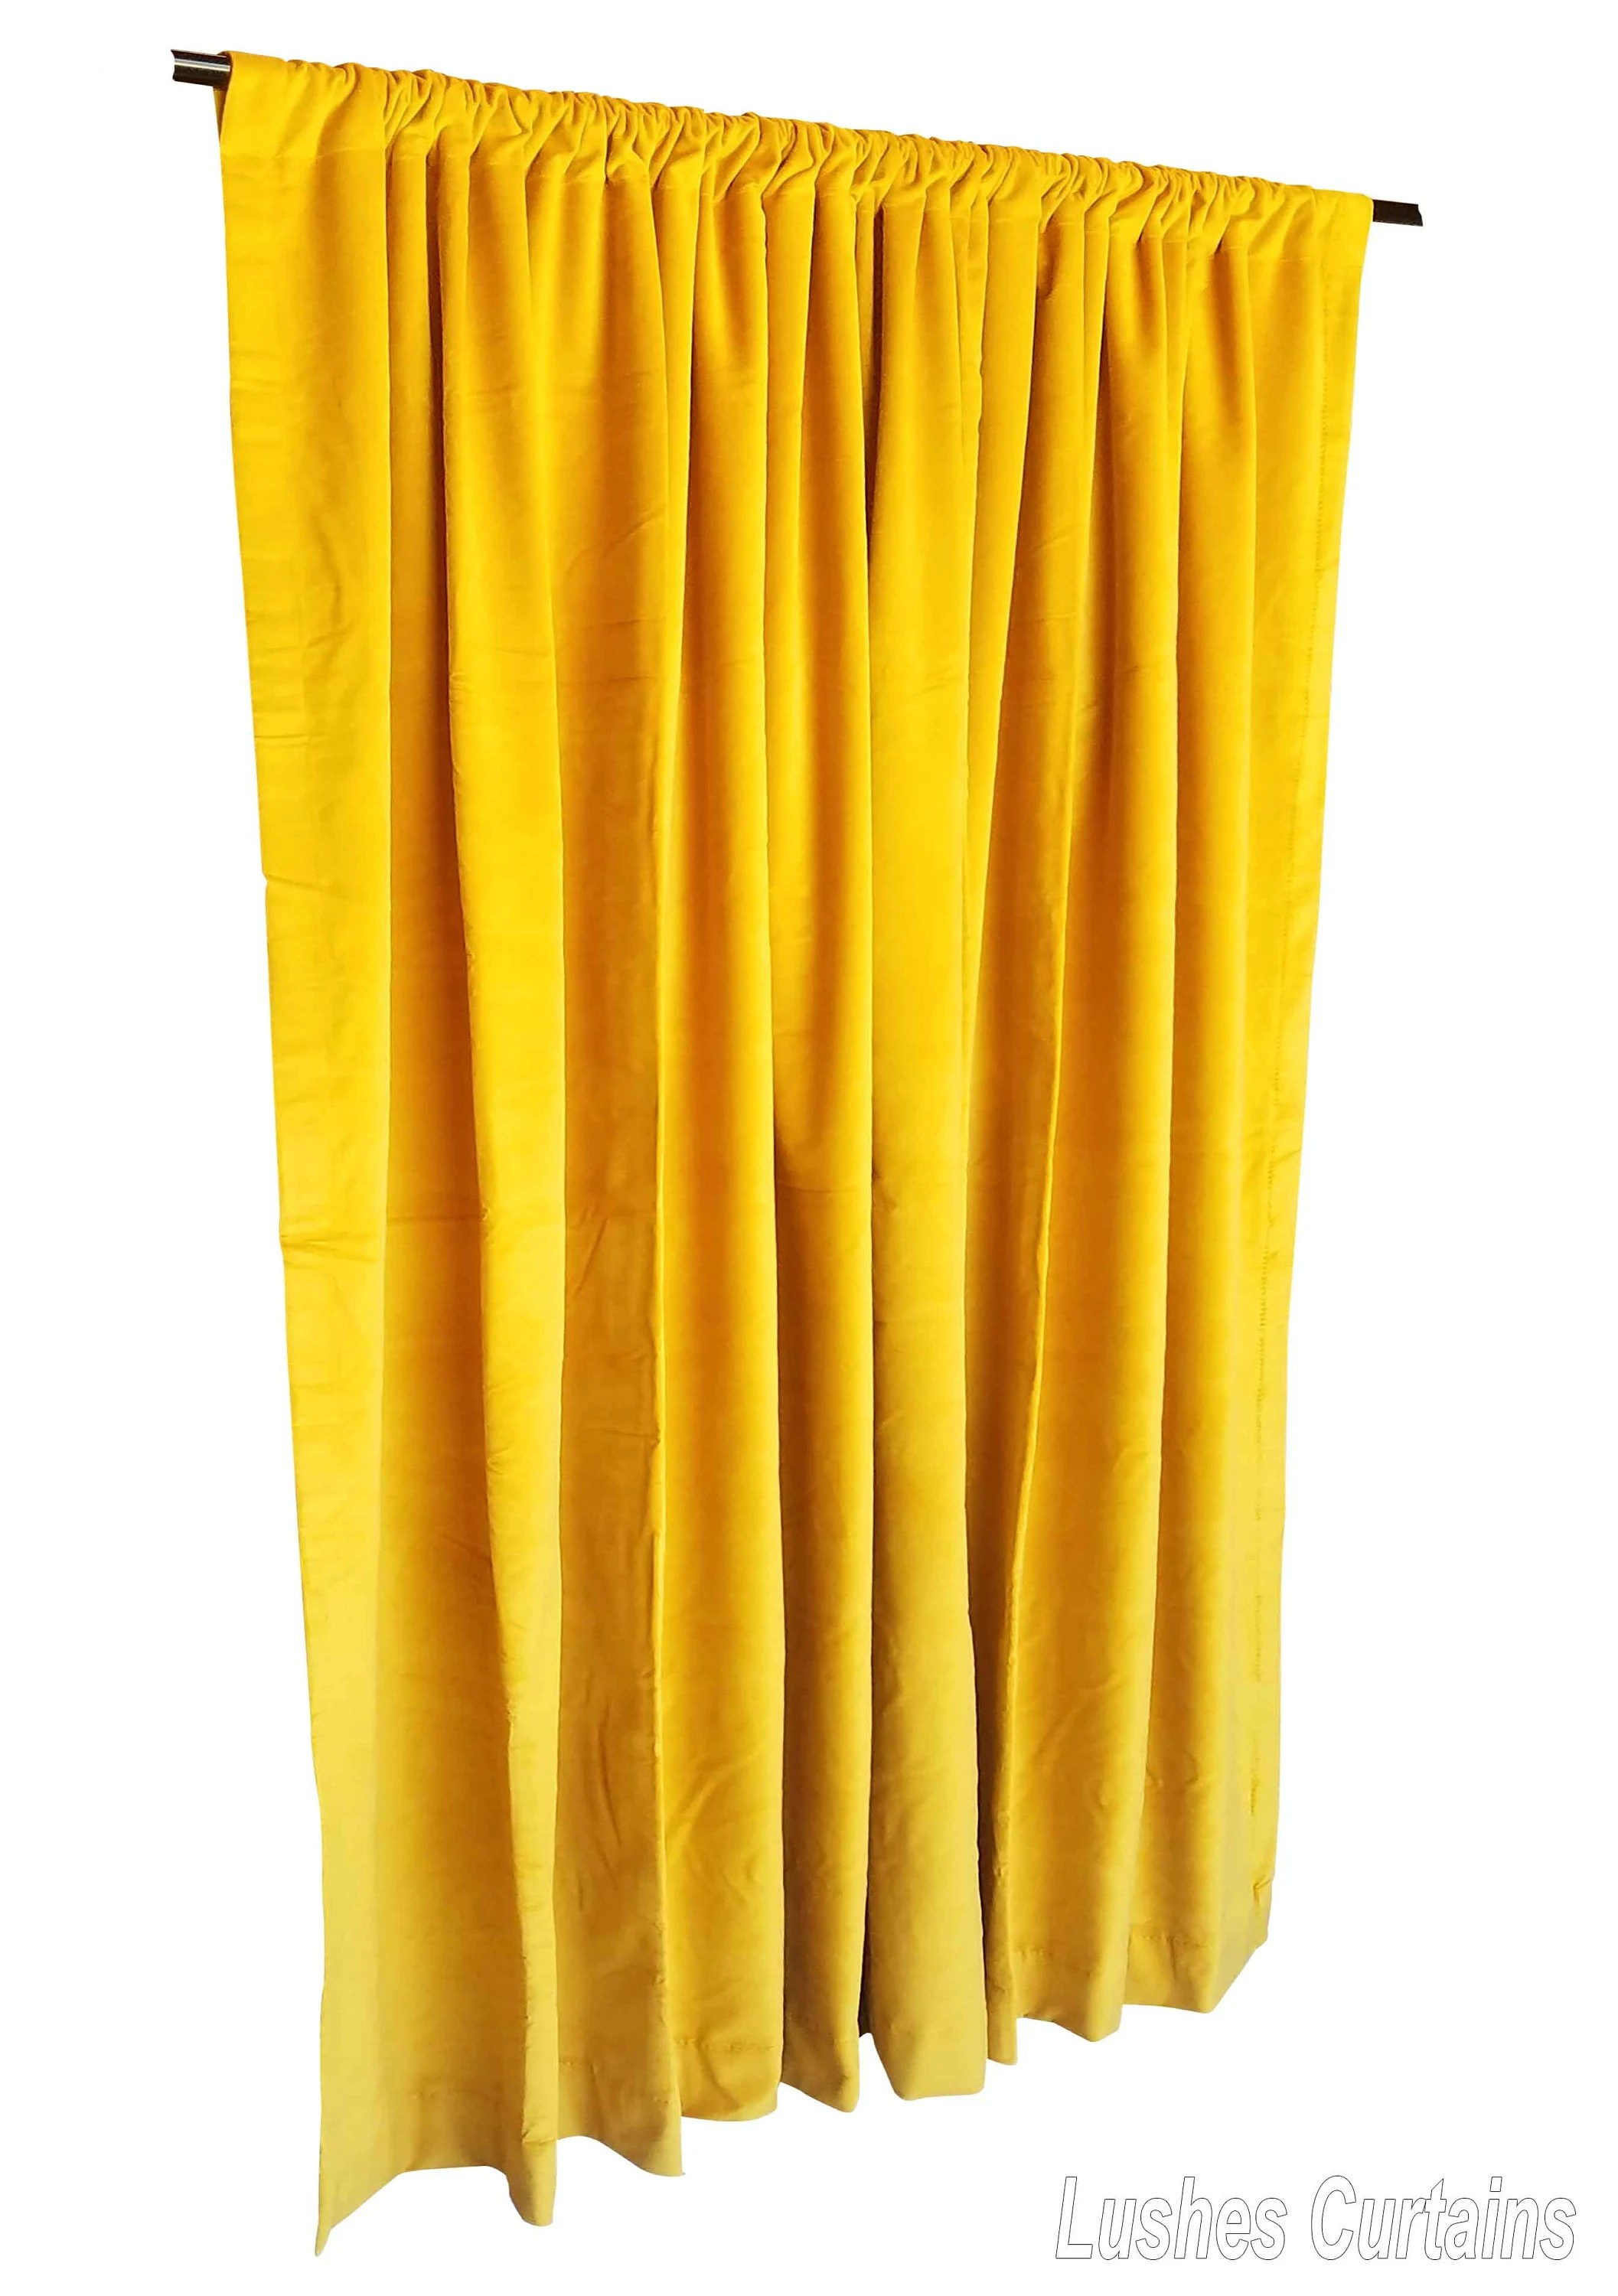 Heavy Thermal Curtains Heavy Thick Yellow Cotton Velvet Curtain Panel 96 Inch Long Drape Custom Made Size Thermal Energy Efficient Noise Reduction Soundproofing